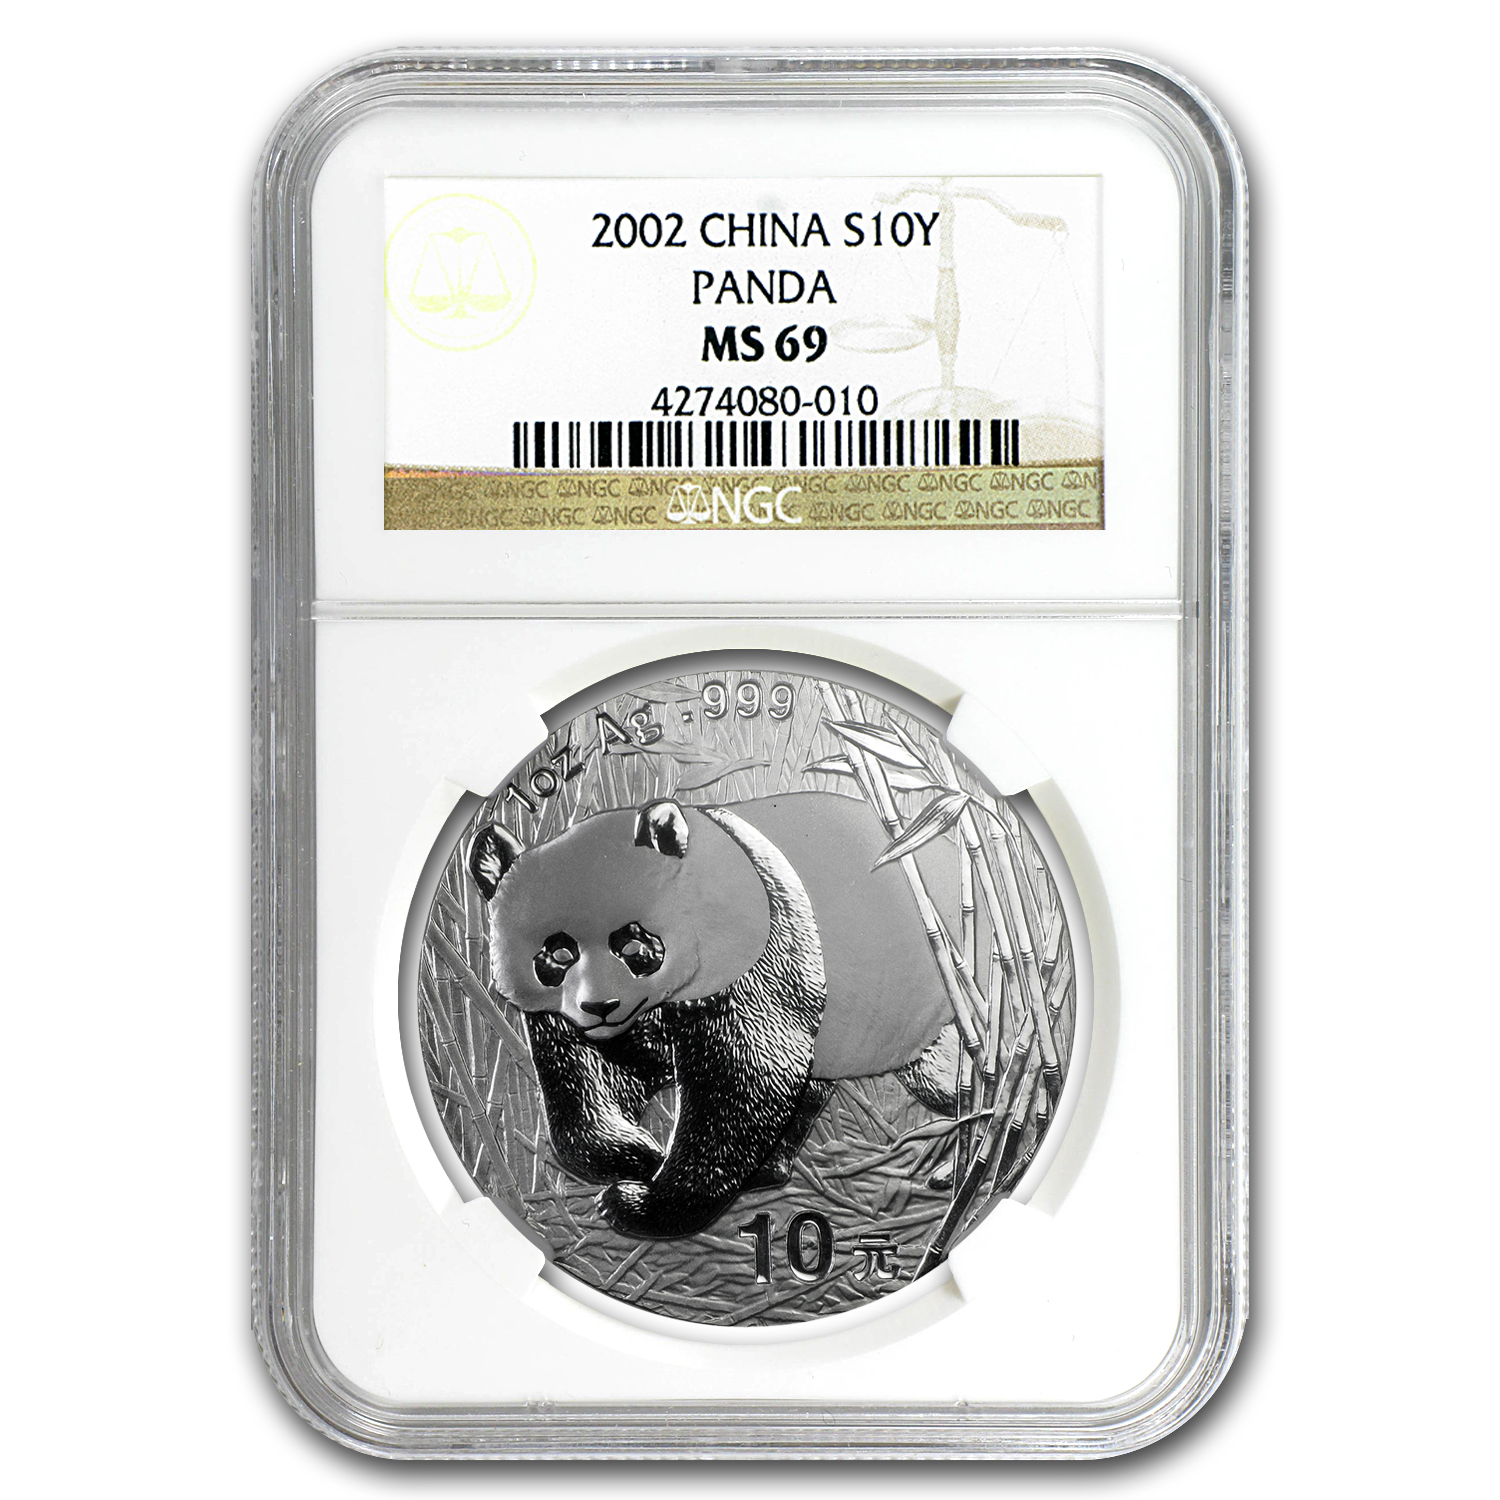 2002 1 oz Silver Chinese Panda MS-69 NGC